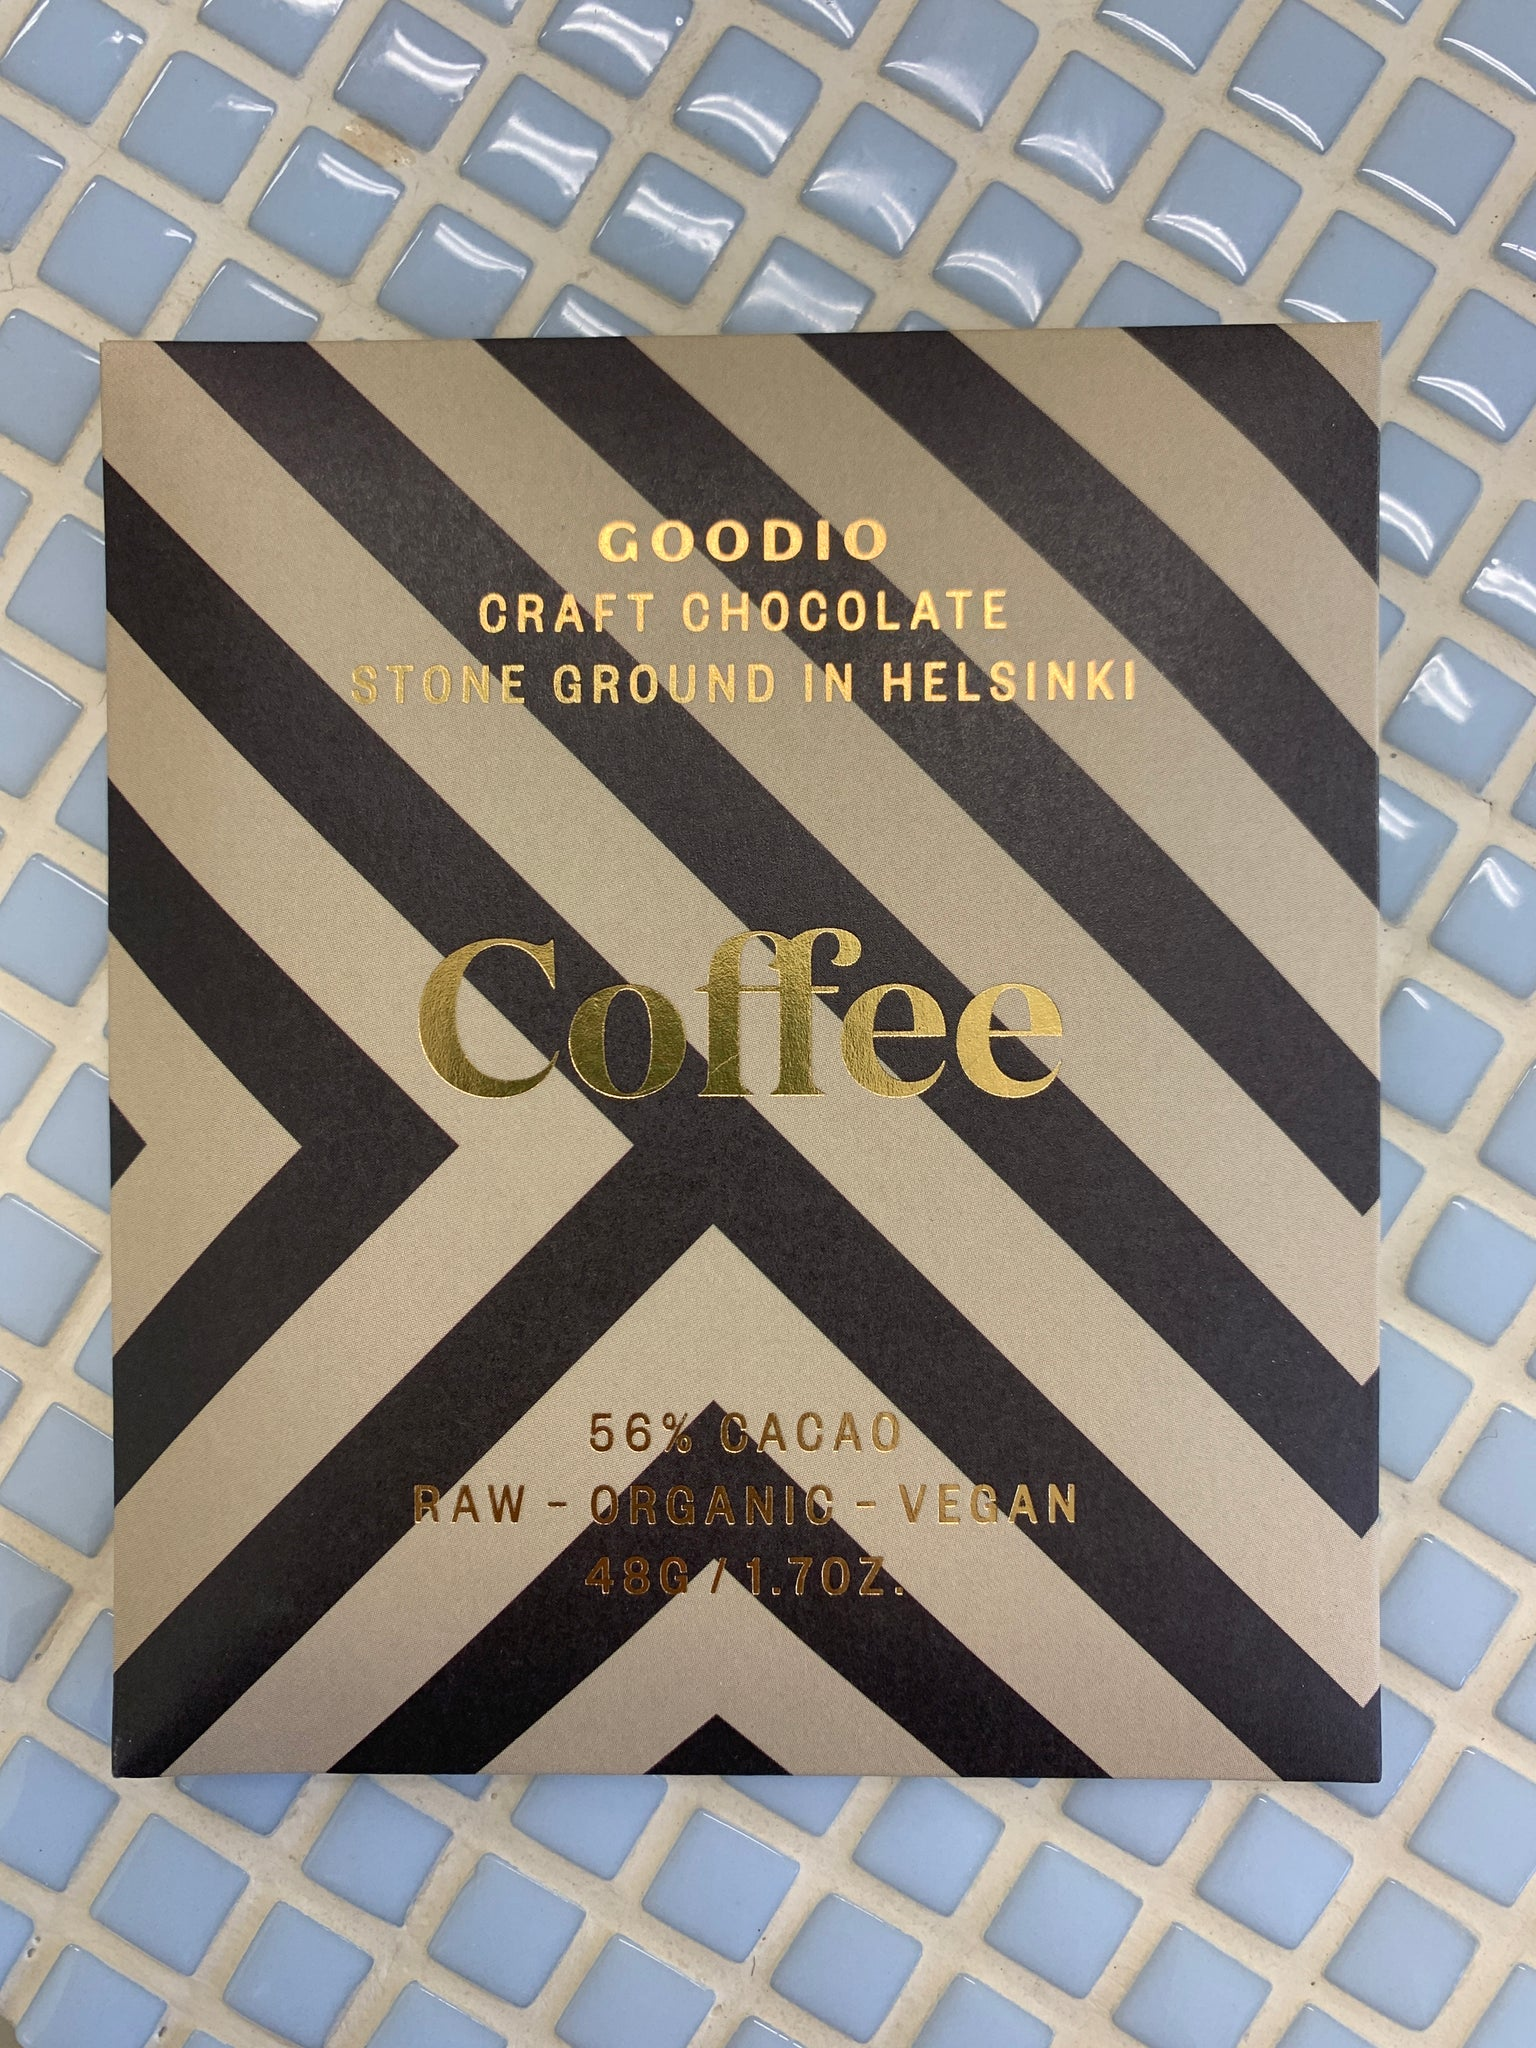 goodio craft chocolate coffee 56 cacao stone ground in helsinki